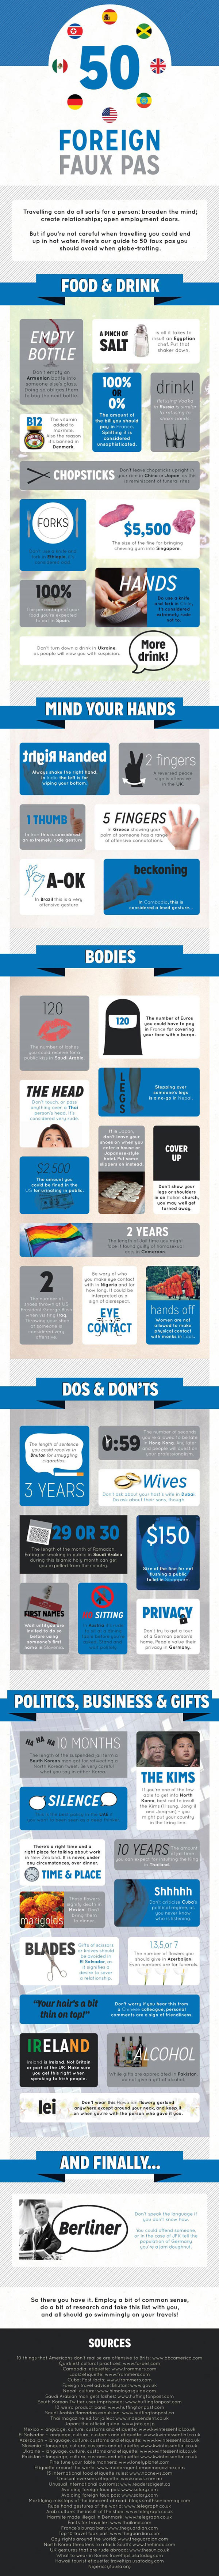 National Etiquette Guide-Infographic